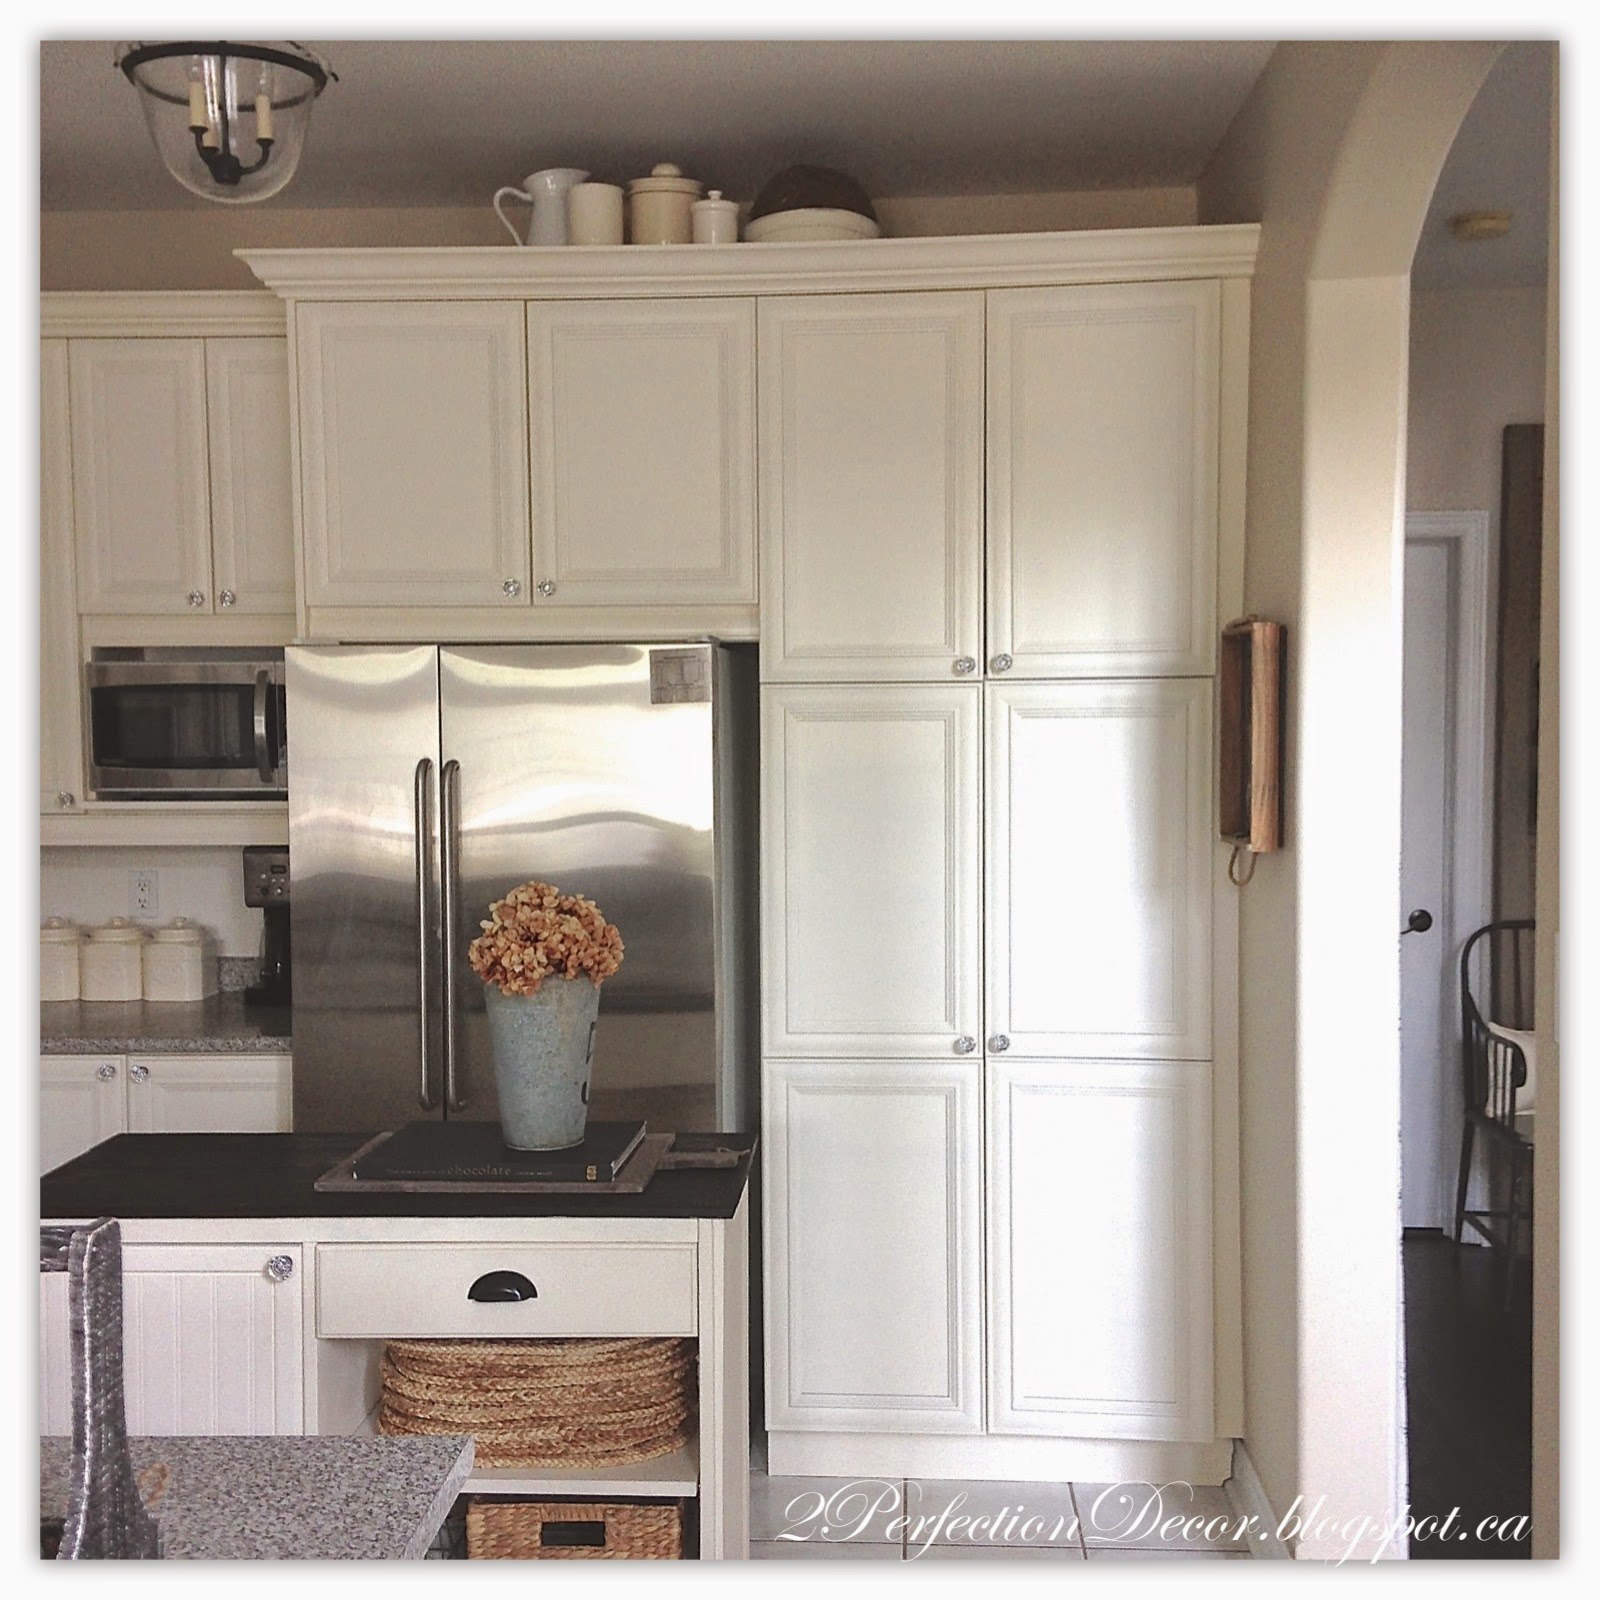 2Perfection Decor: Painted French Country Kitchen Reveal